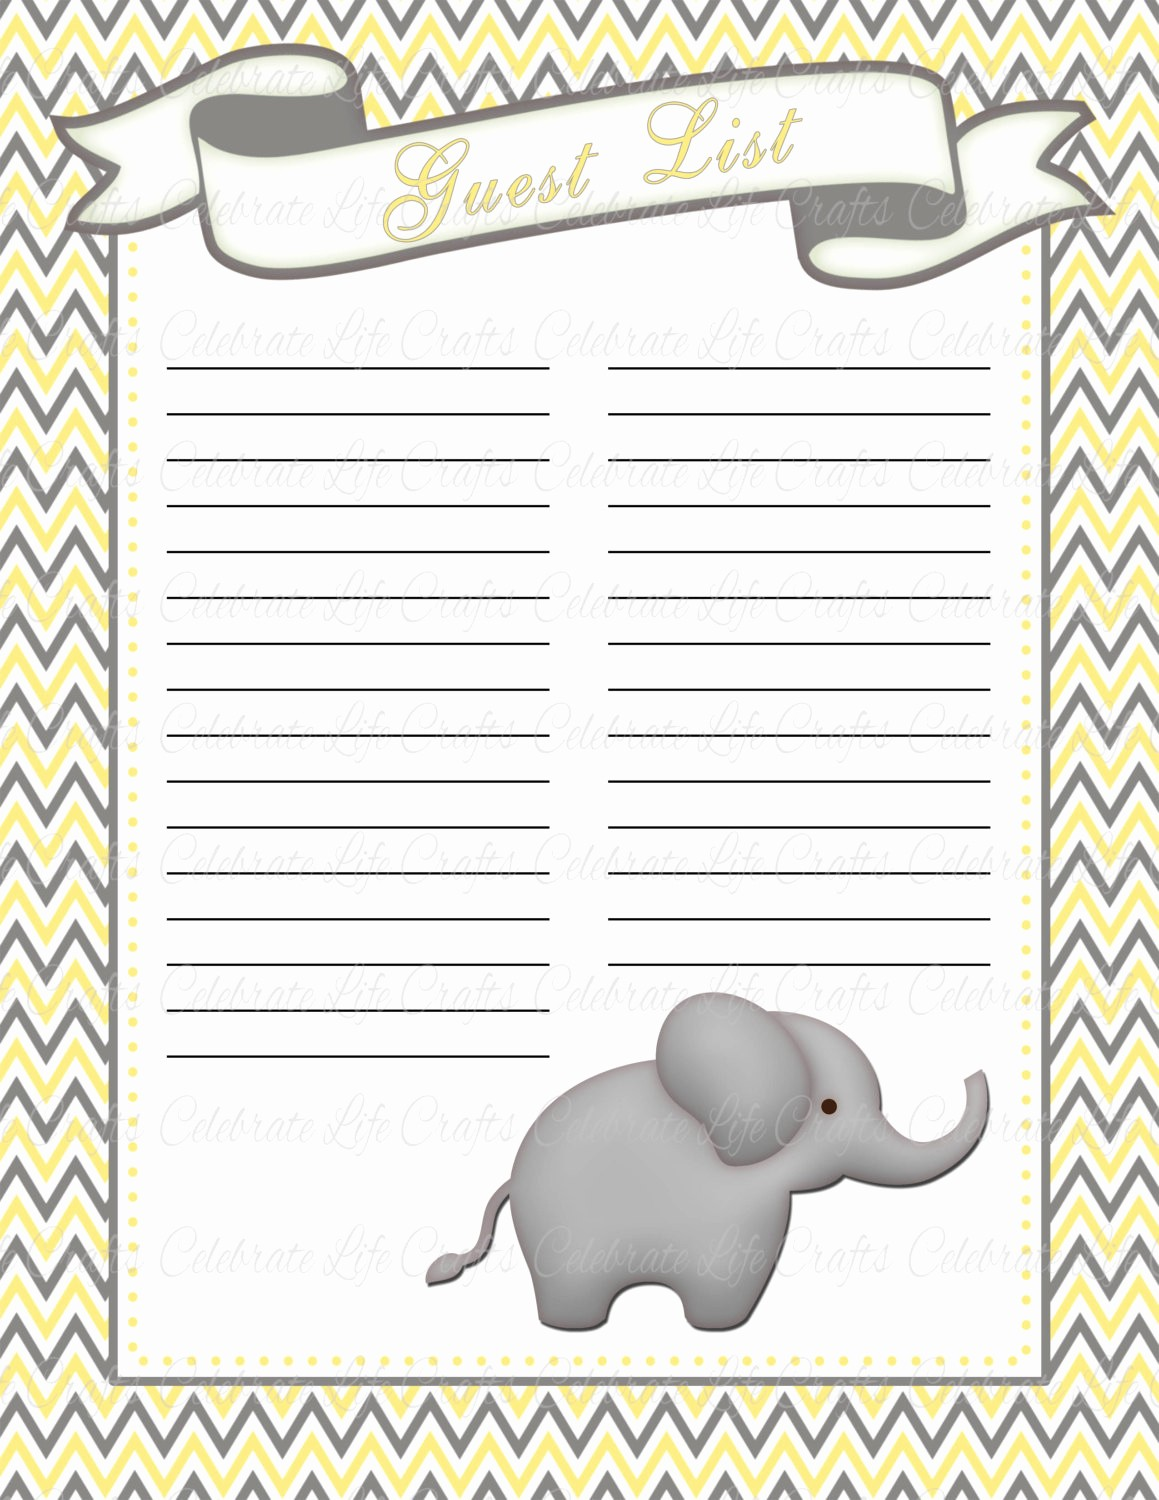 Baby Shower Guest List Printable Inspirational Baby Shower Guest List Printable Baby Shower Party